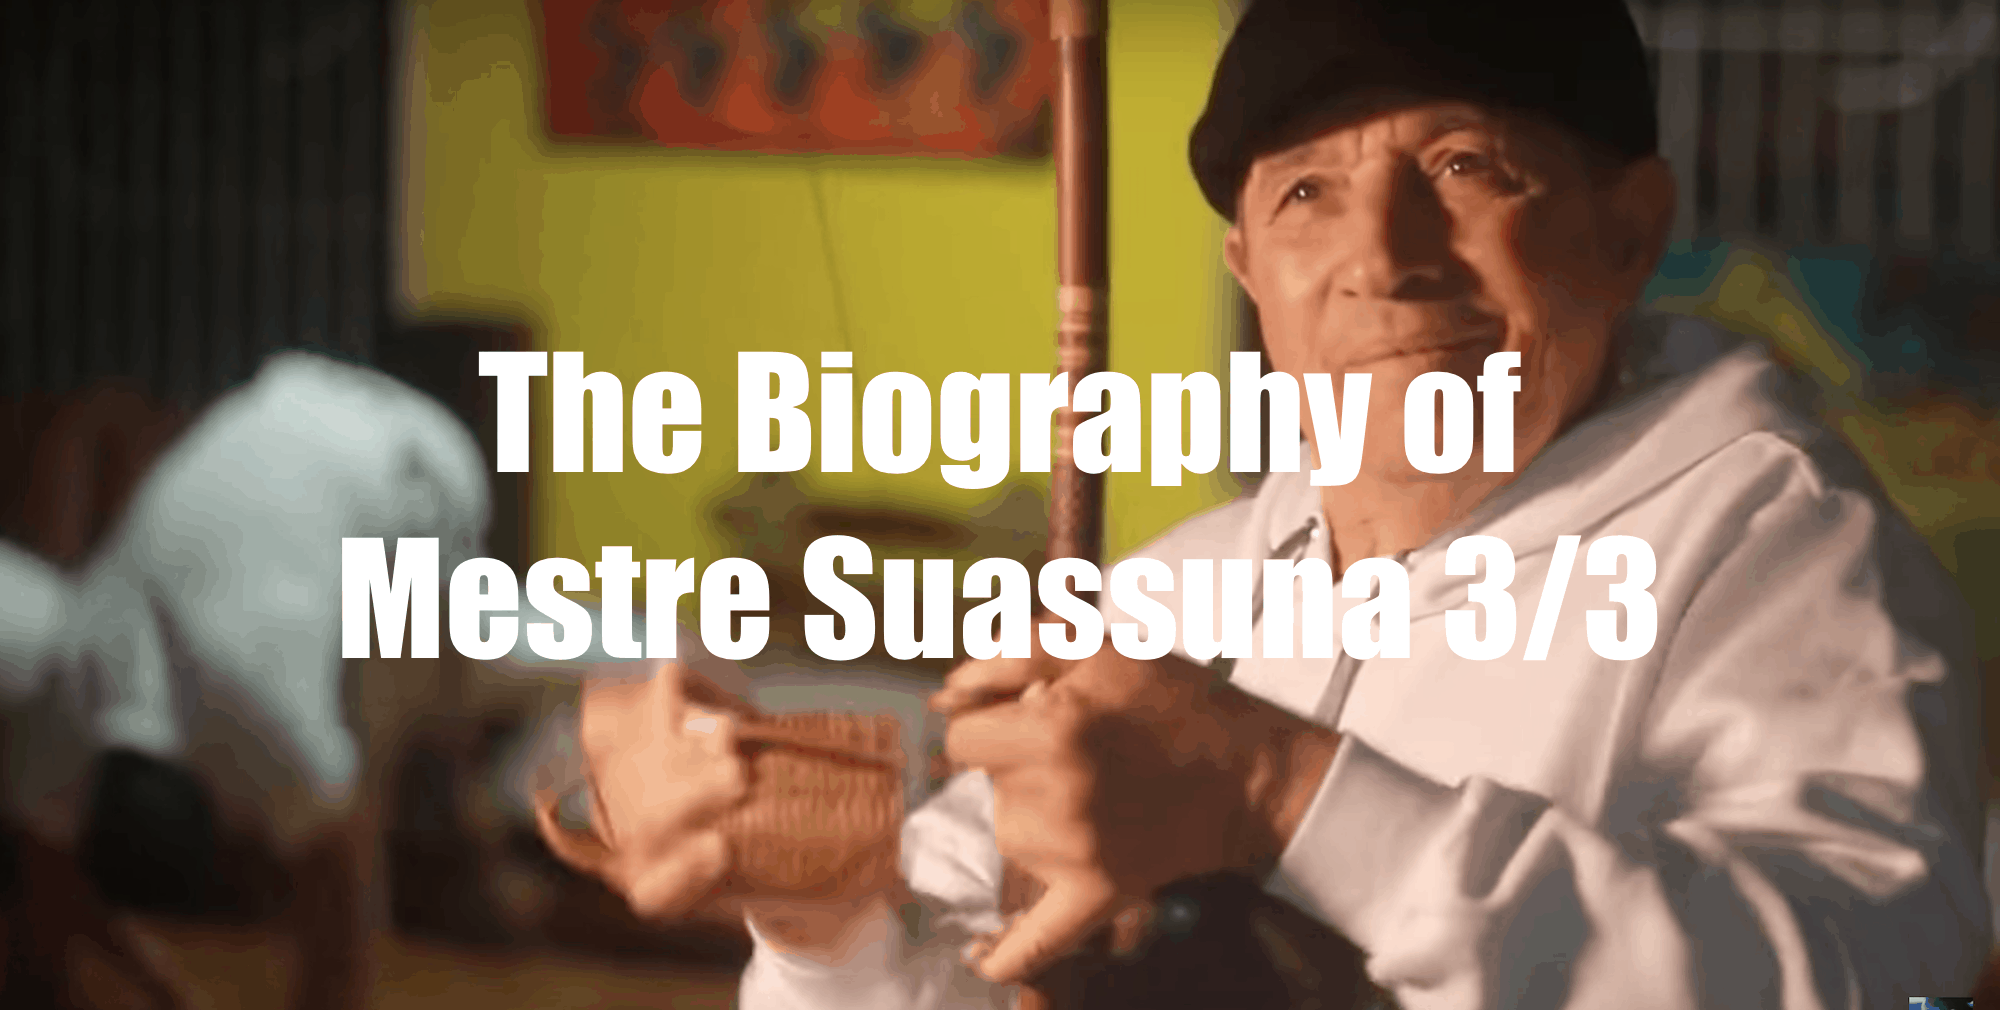 The Biography of Mestre Suassuna